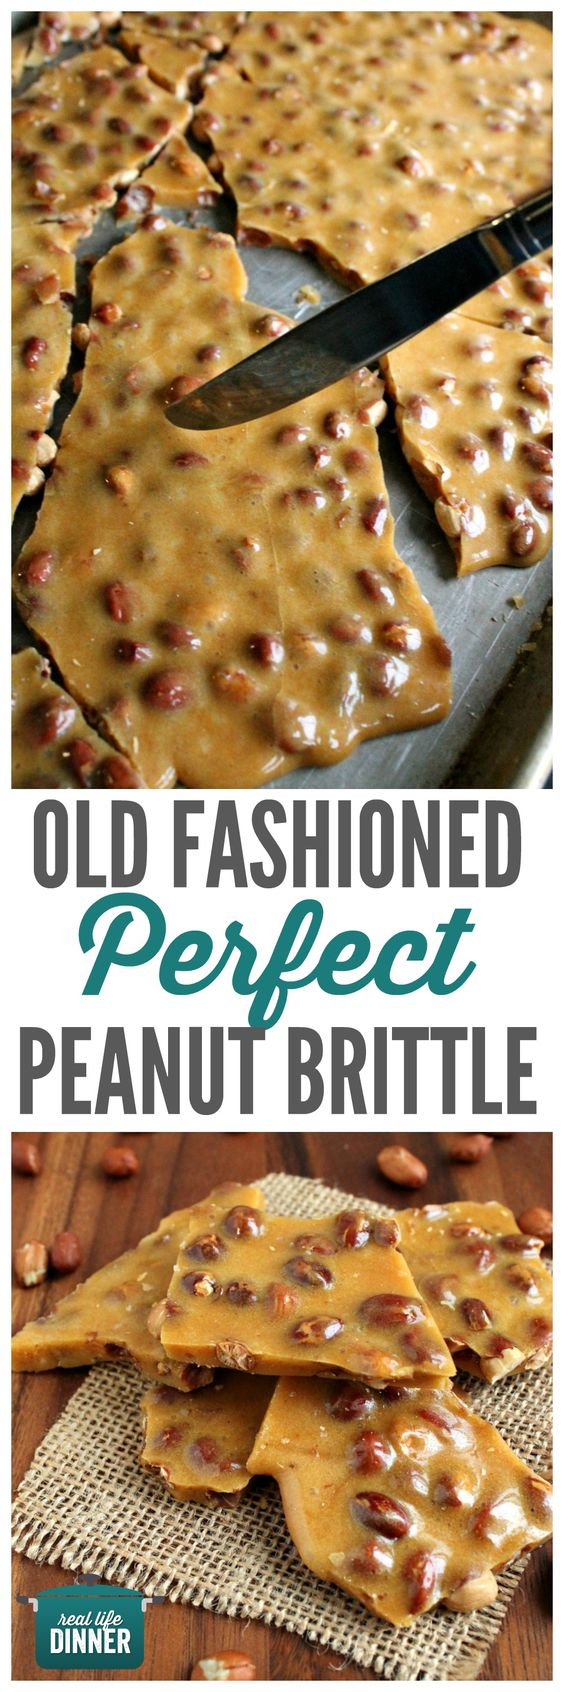 Mom's Best Peanut Brittle Recipe via Real Life Dinner - Old Fashioned PERFECT Peanut Brittle has to be included in your Christmas Gift Plates and Goodies Bags! #chrstmascookies #christmascandy #christmastreats #holidaydesserts #holidayrecipes #christmascandies #holidaygiftplates